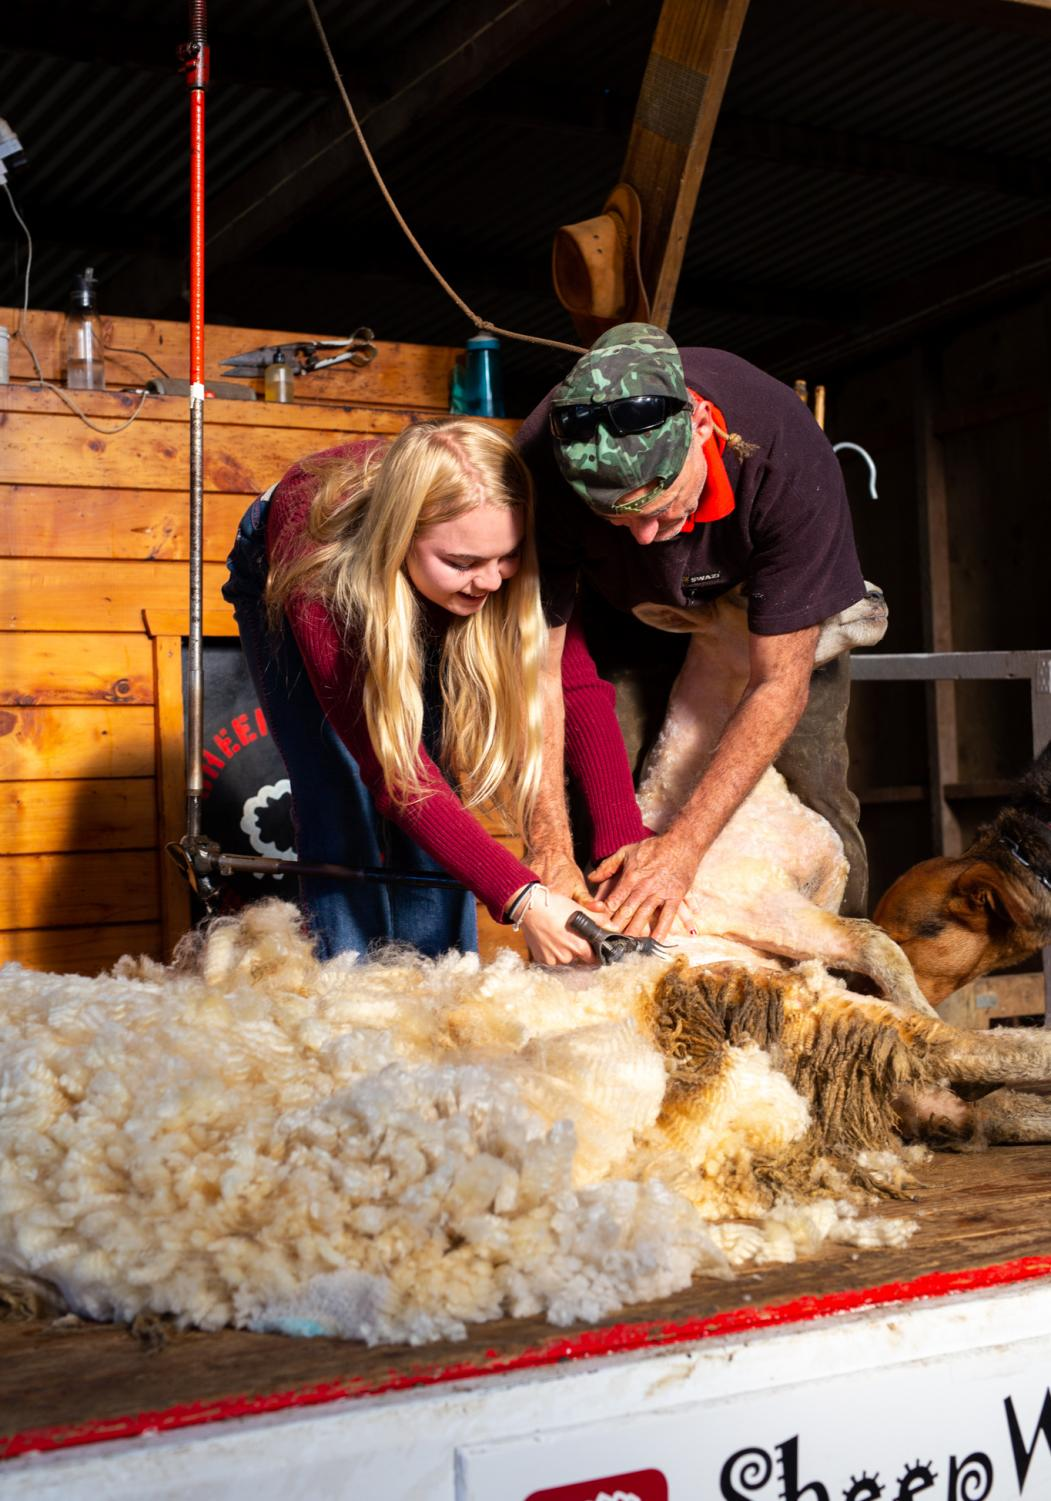 SHEAR+HAPPINESS%3A+Senior+Ava+Walters+shears+a+sheep+at+Sheep+World+in+the+New+Zealand+countryside%2C+Dome+Valley+outside+of+Auckland+on+July+10.+%E2%80%9CFrom+the+moment+we+sheared+the+sheep%2C+I+knew+this+trip+was+going+to+be+amazing+and+educational%2C%E2%80%9D+Marsh+said.